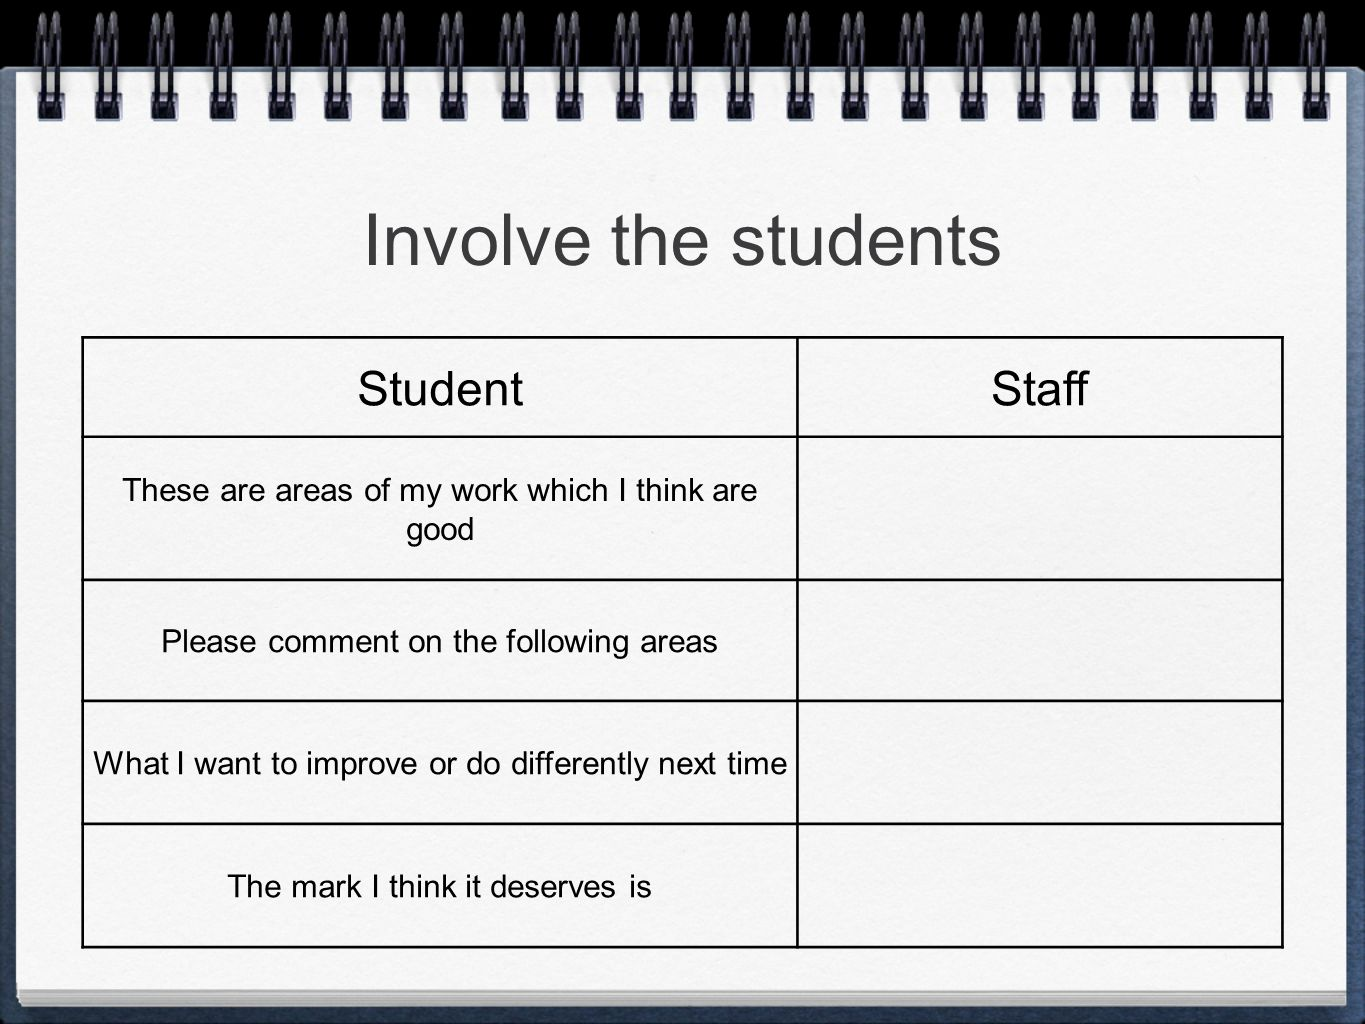 Involve the students StudentStaff These are areas of my work which I think are good Please comment on the following areas What I want to improve or do differently next time The mark I think it deserves is